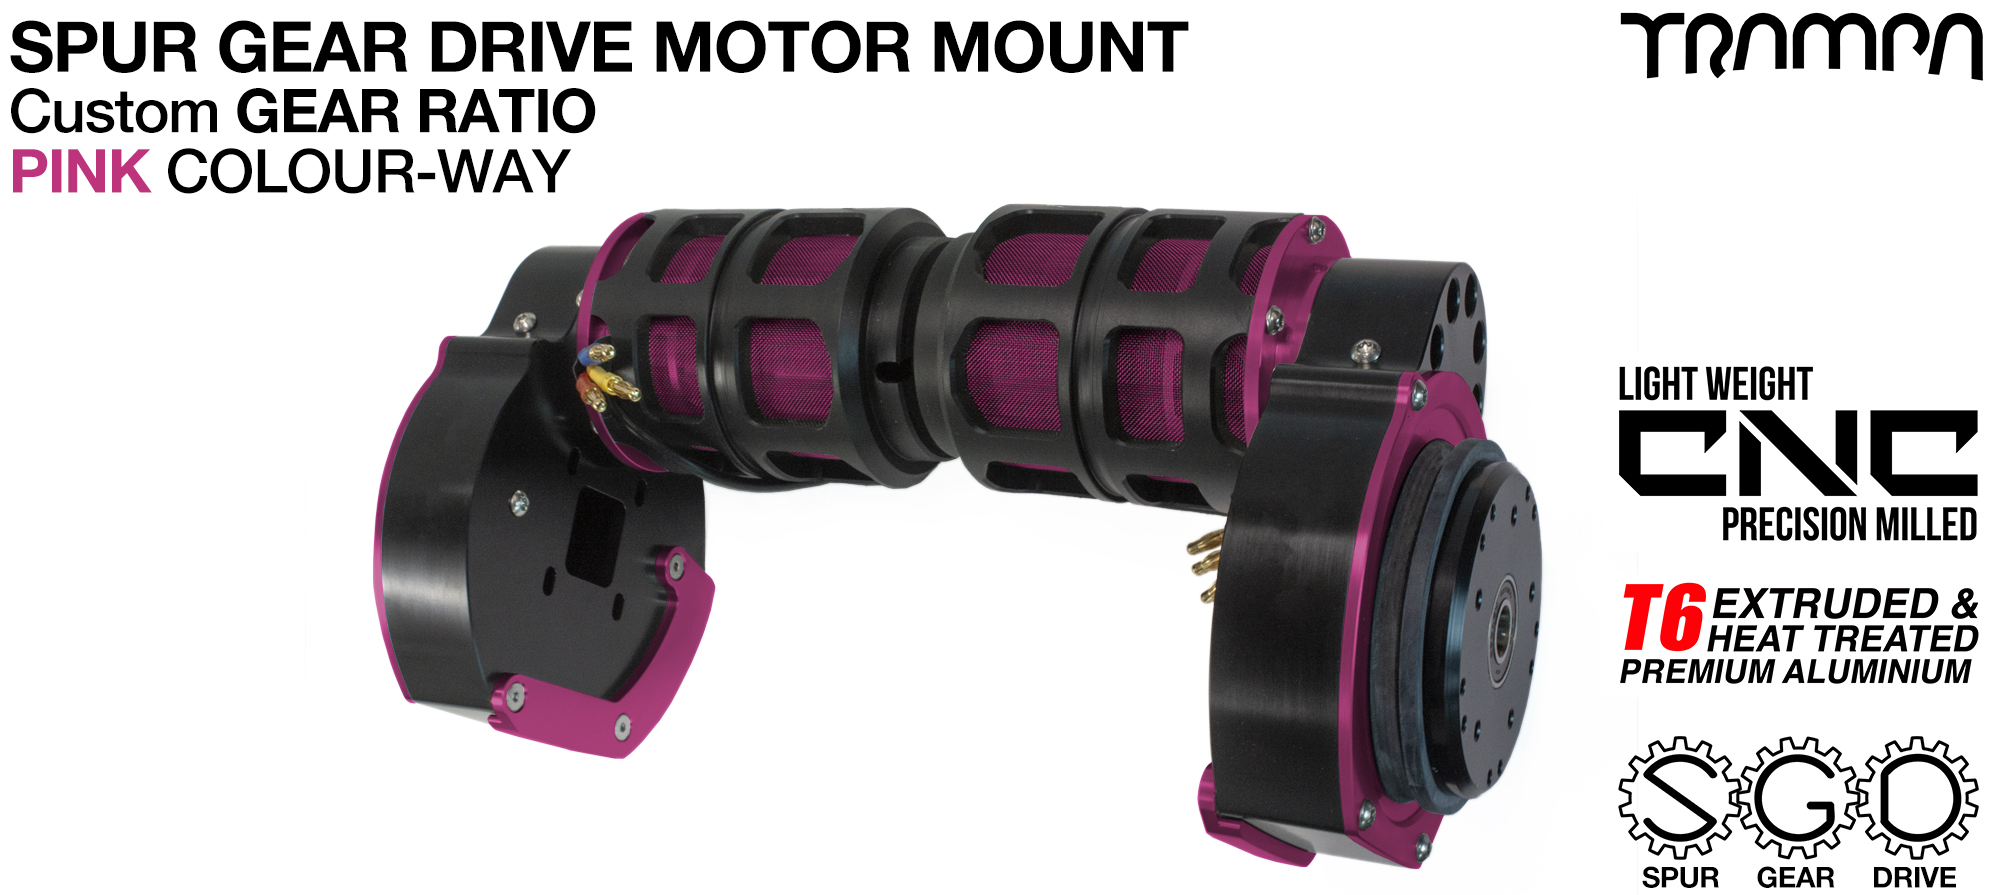 Mountainboard Spur Gear Drive TWIN Motor Mounts - PINK